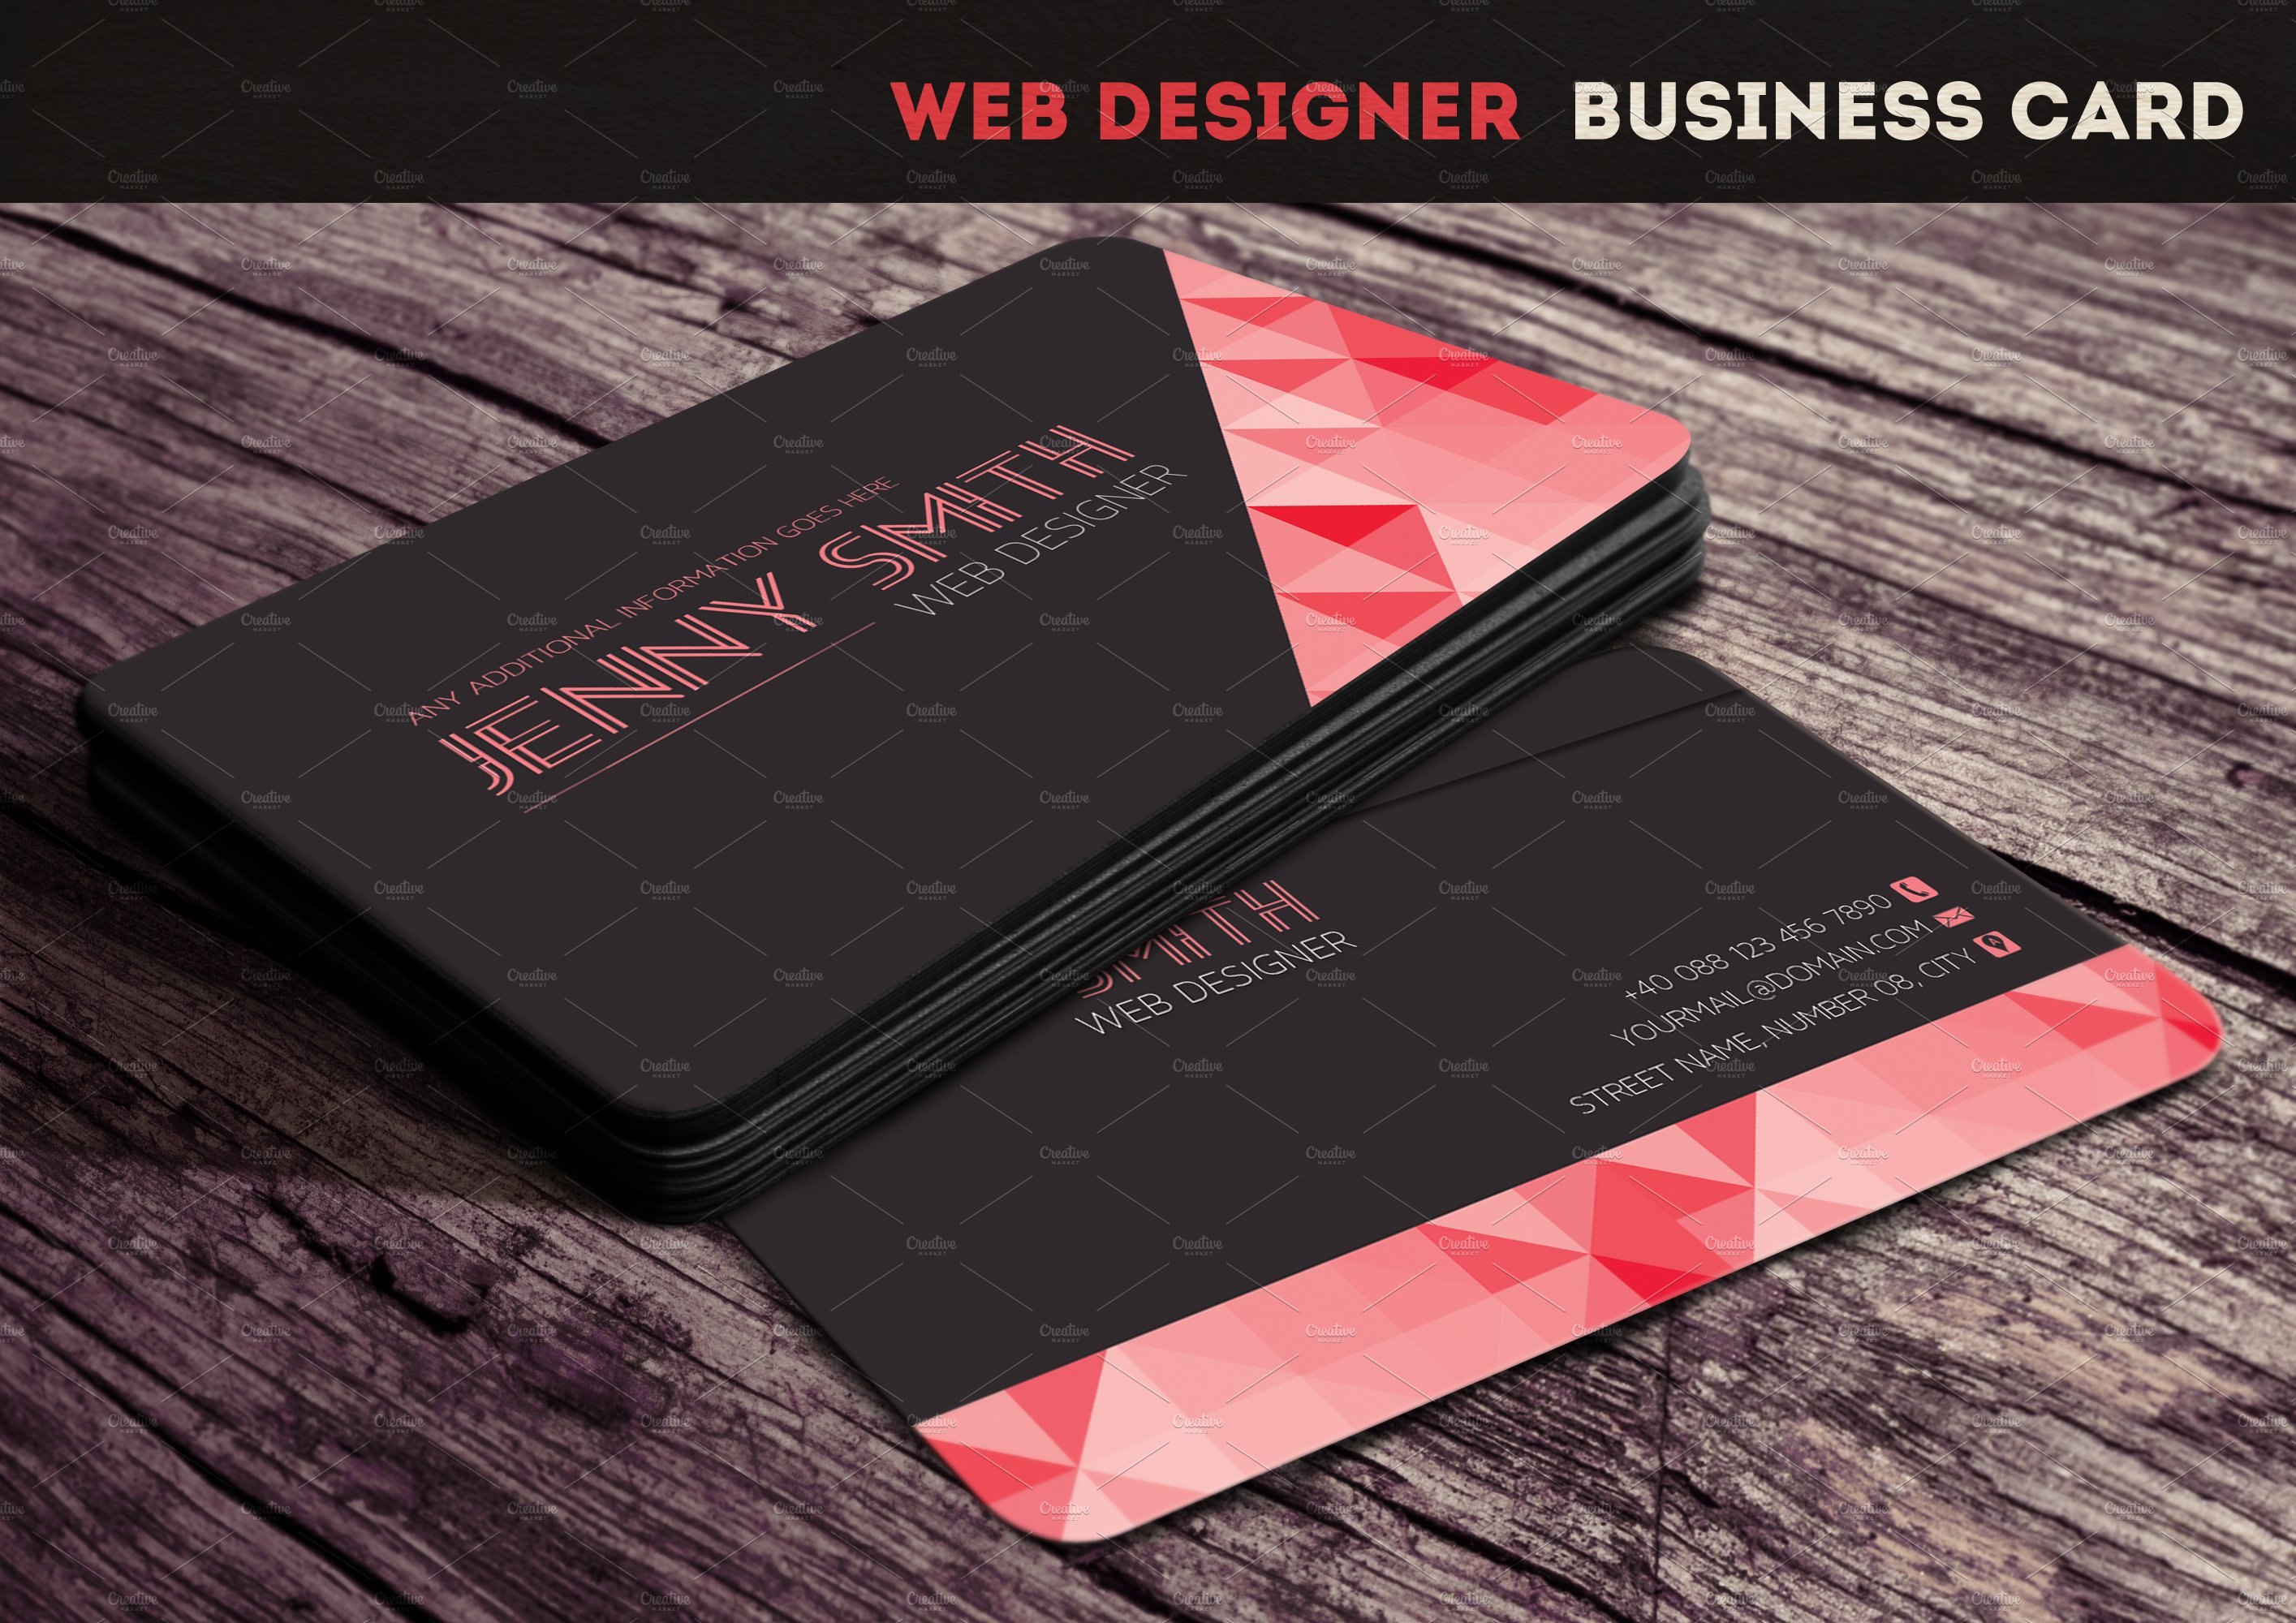 Web designer business card business card templates creative market reheart Image collections